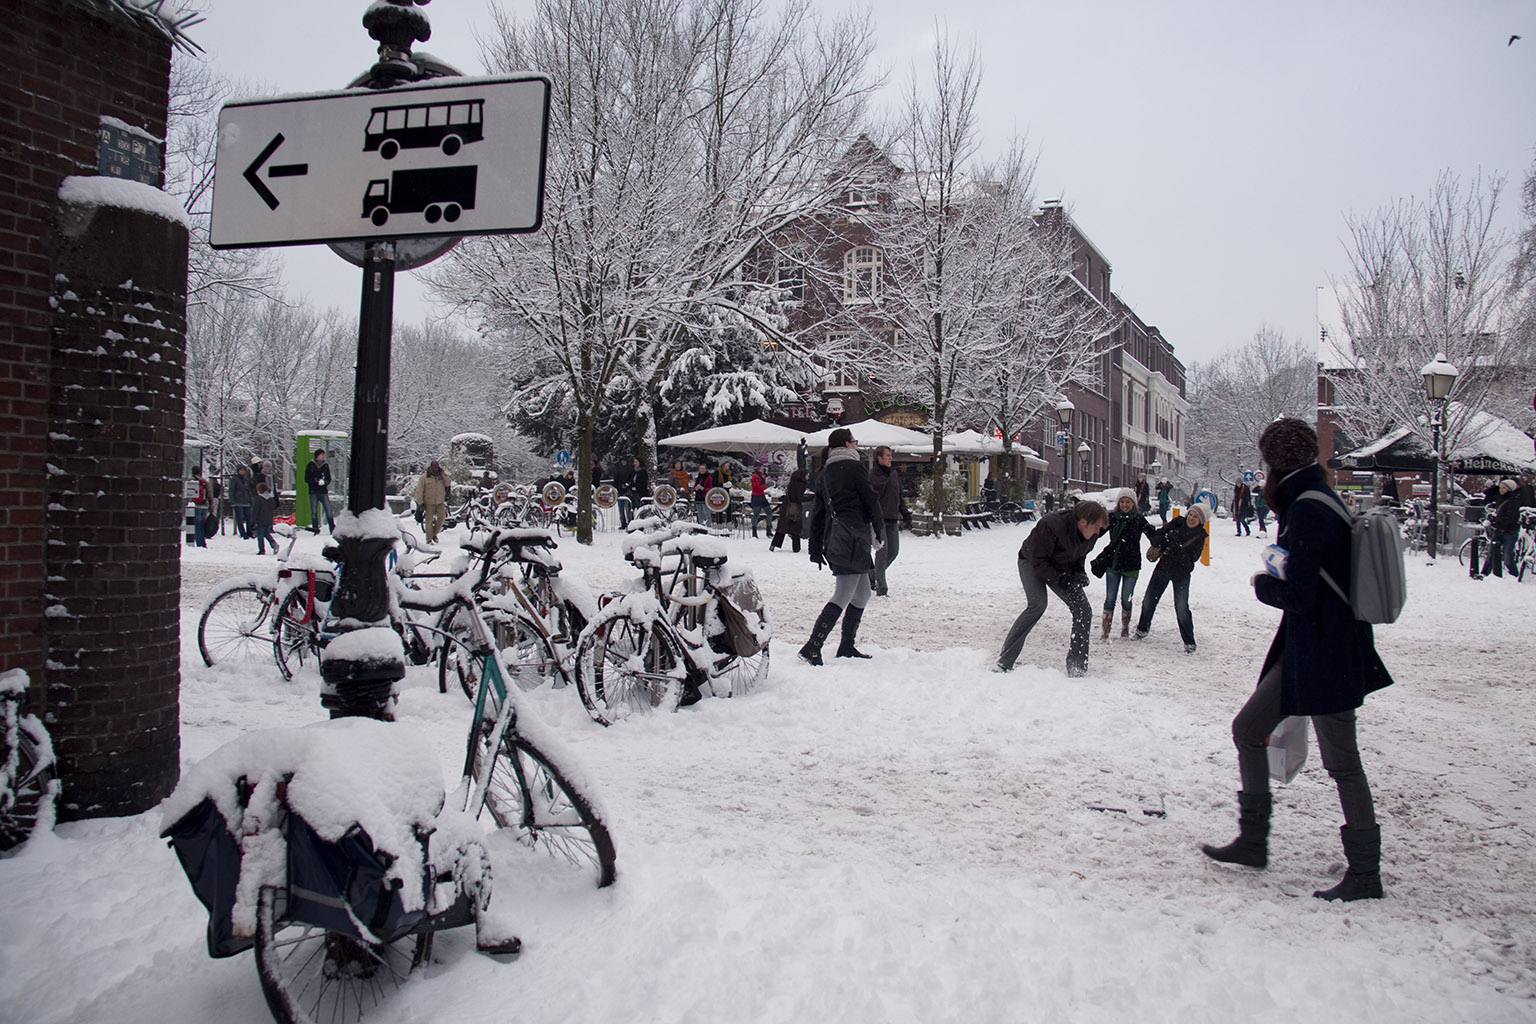 Utrecht Winter 2010 04